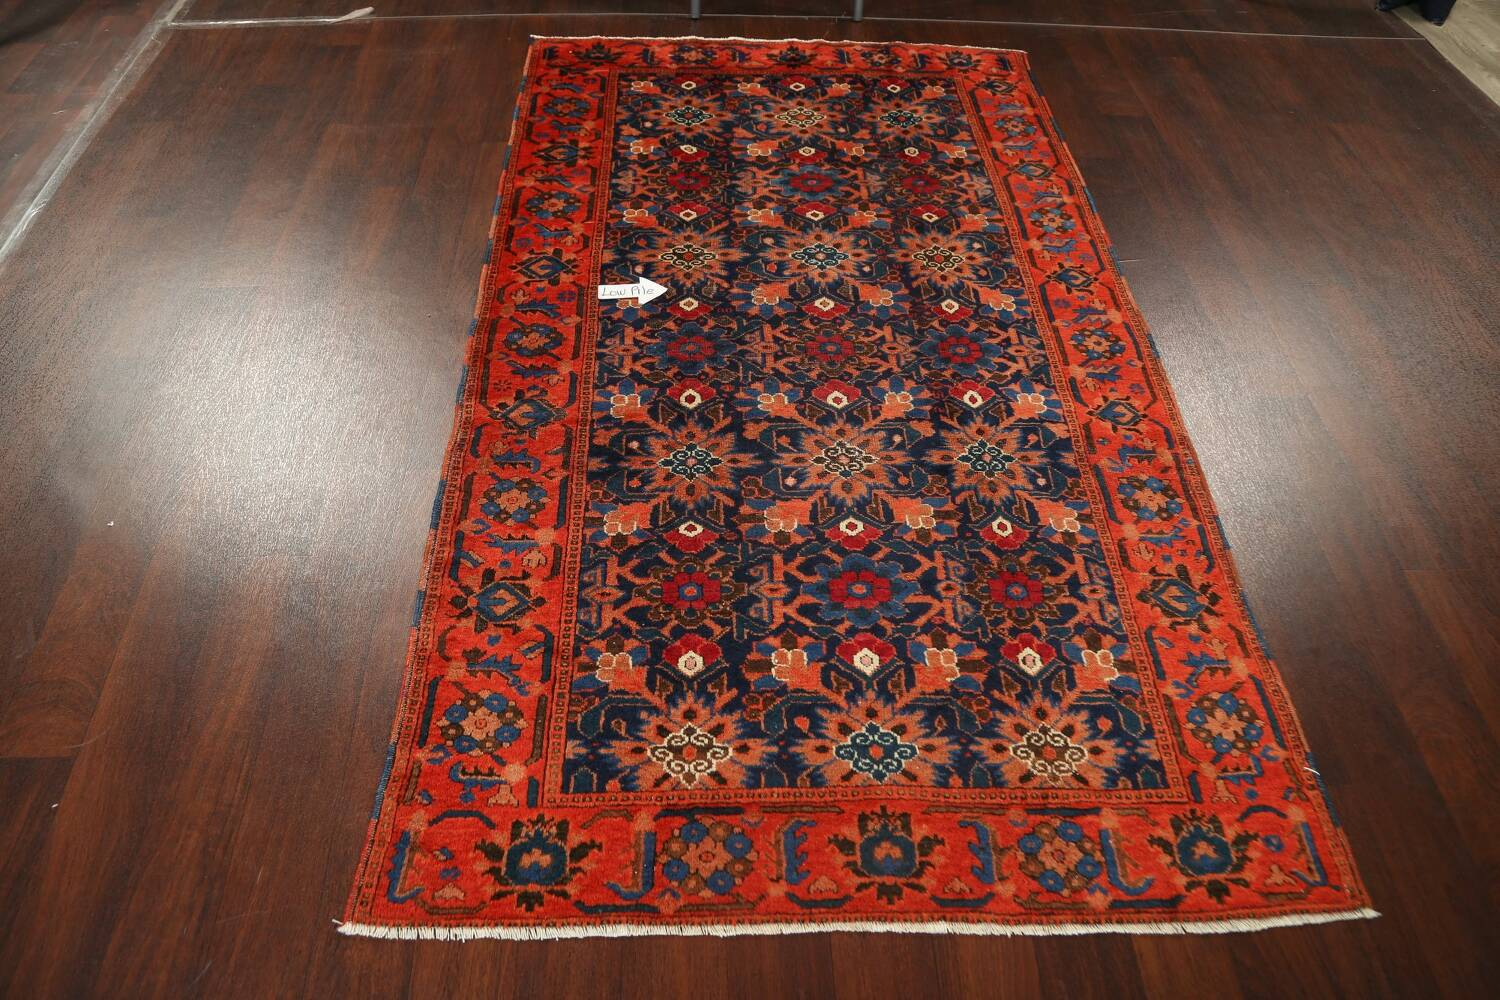 Antique 100% Vegetable Dye Malayer Persian Area Rug 4x7 image 13